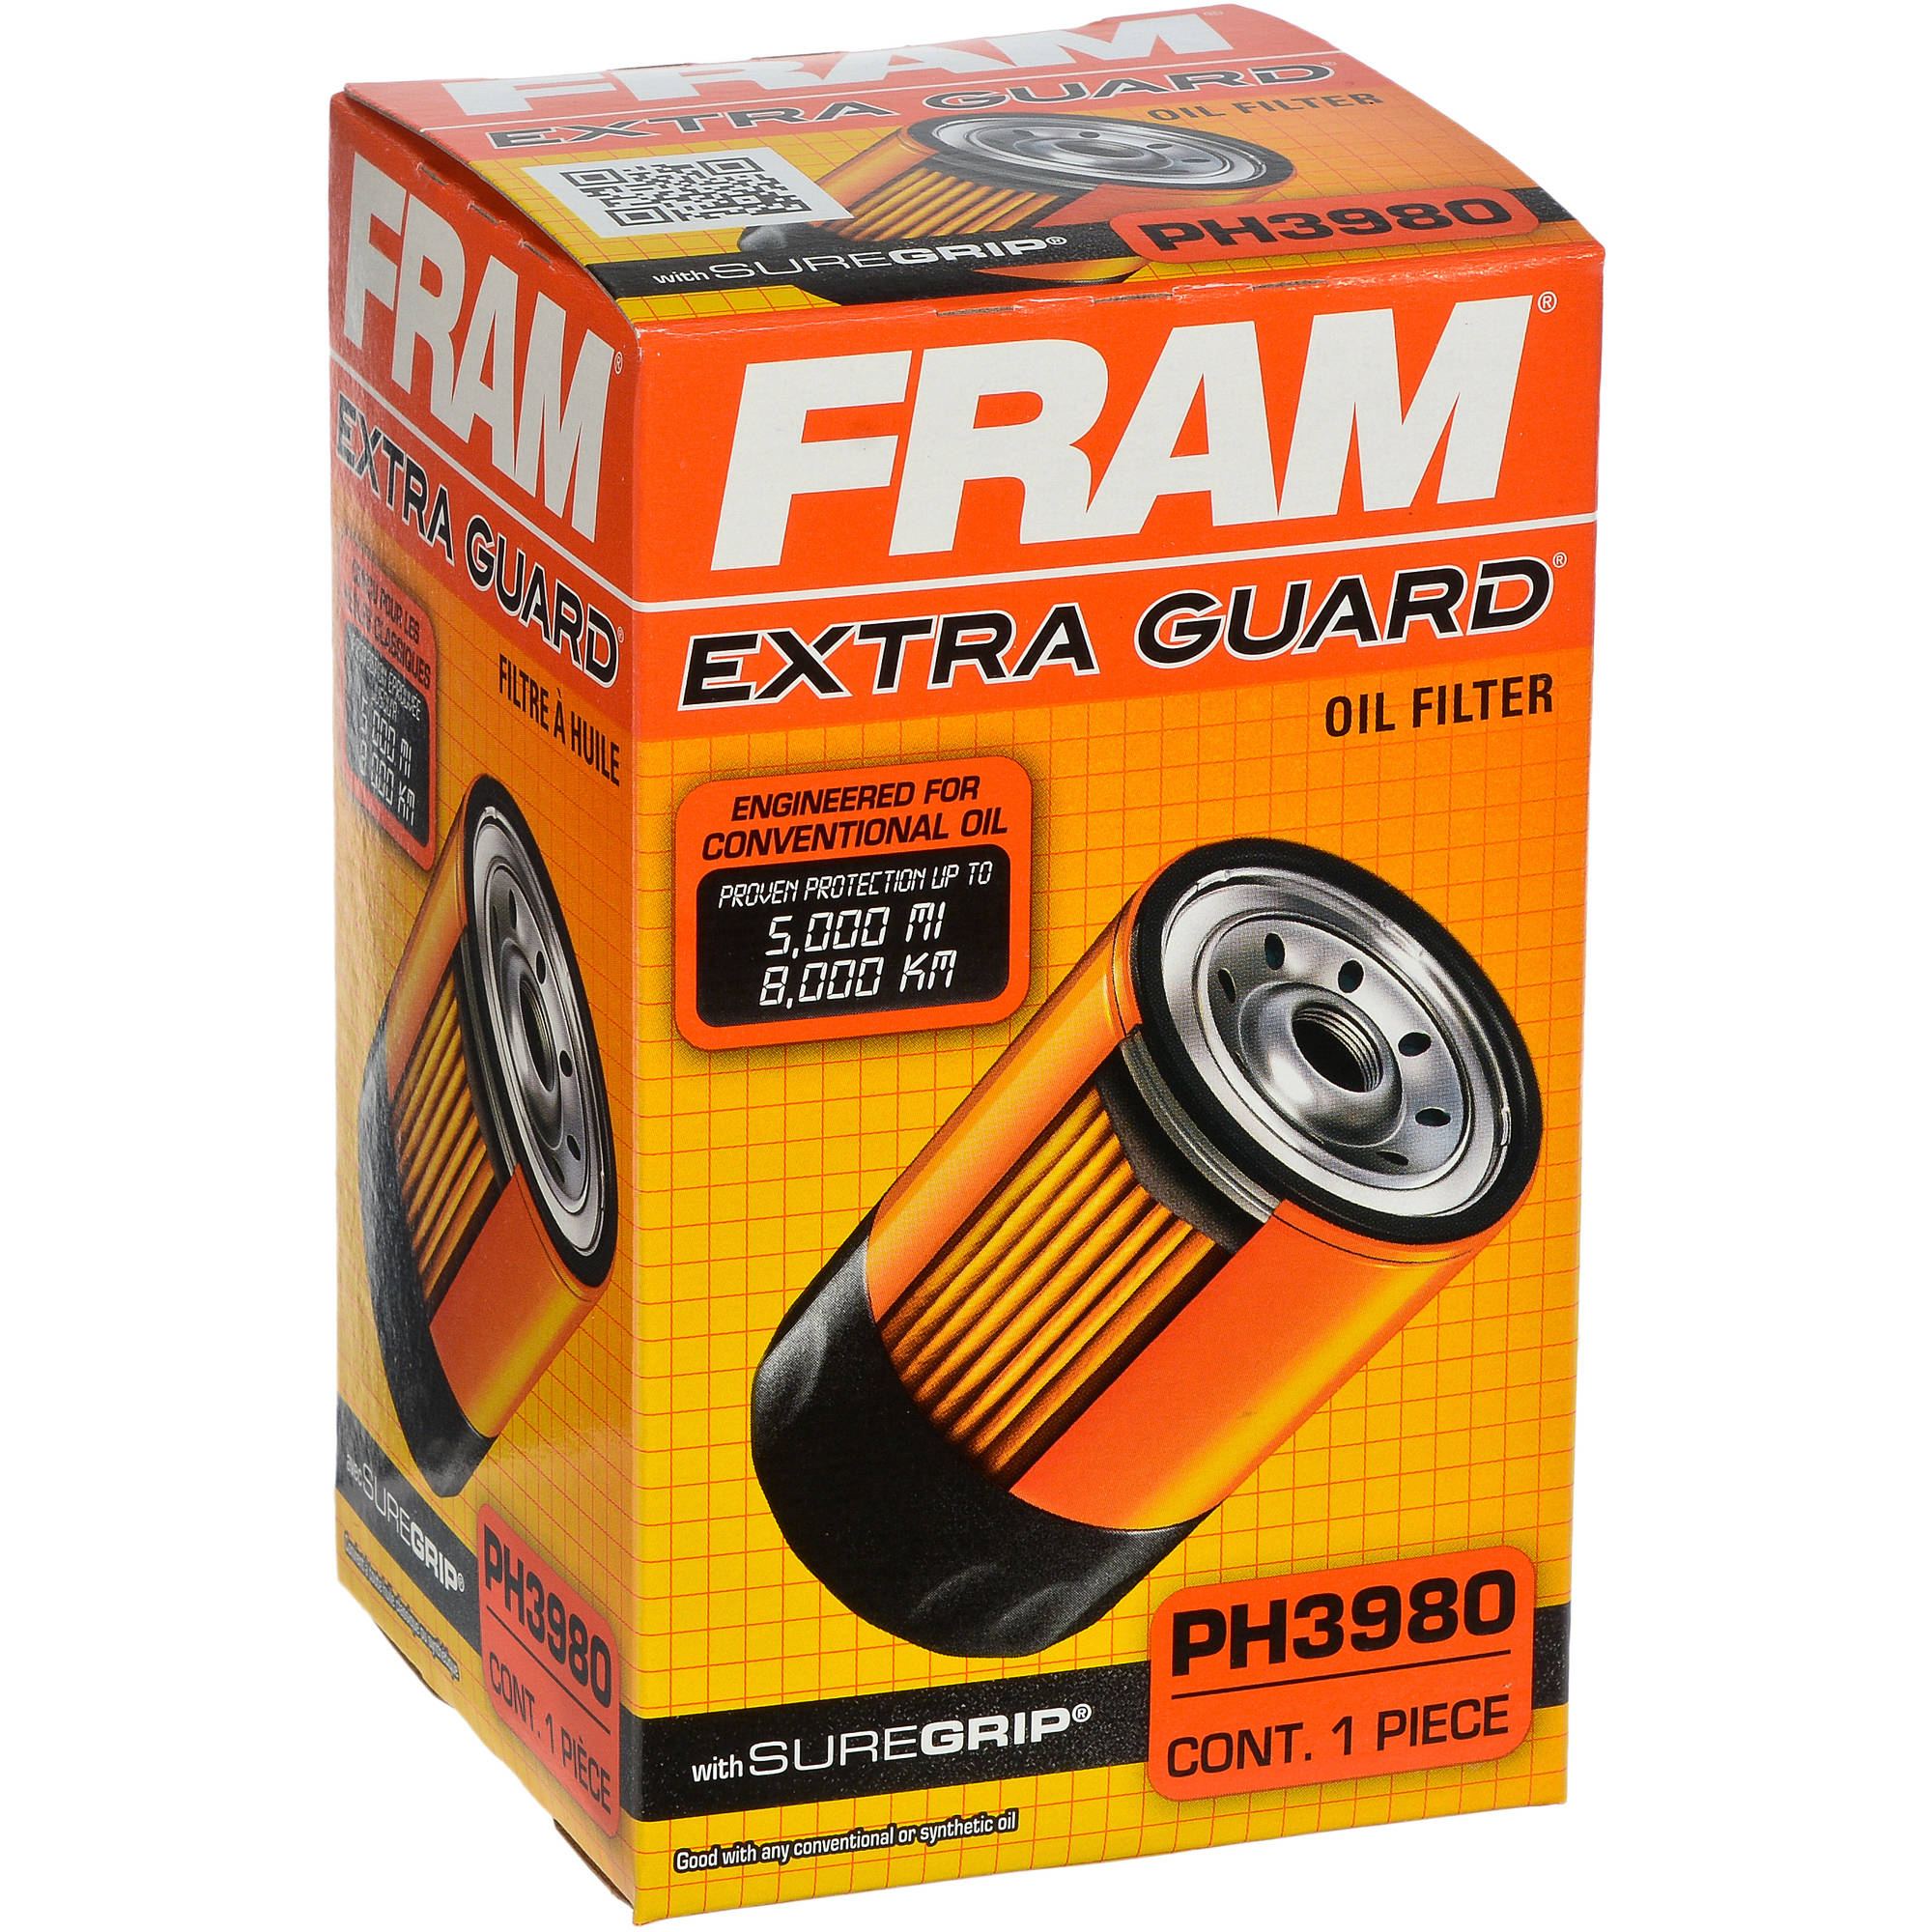 FRAM Extra Guard Oil Filter, PH3980